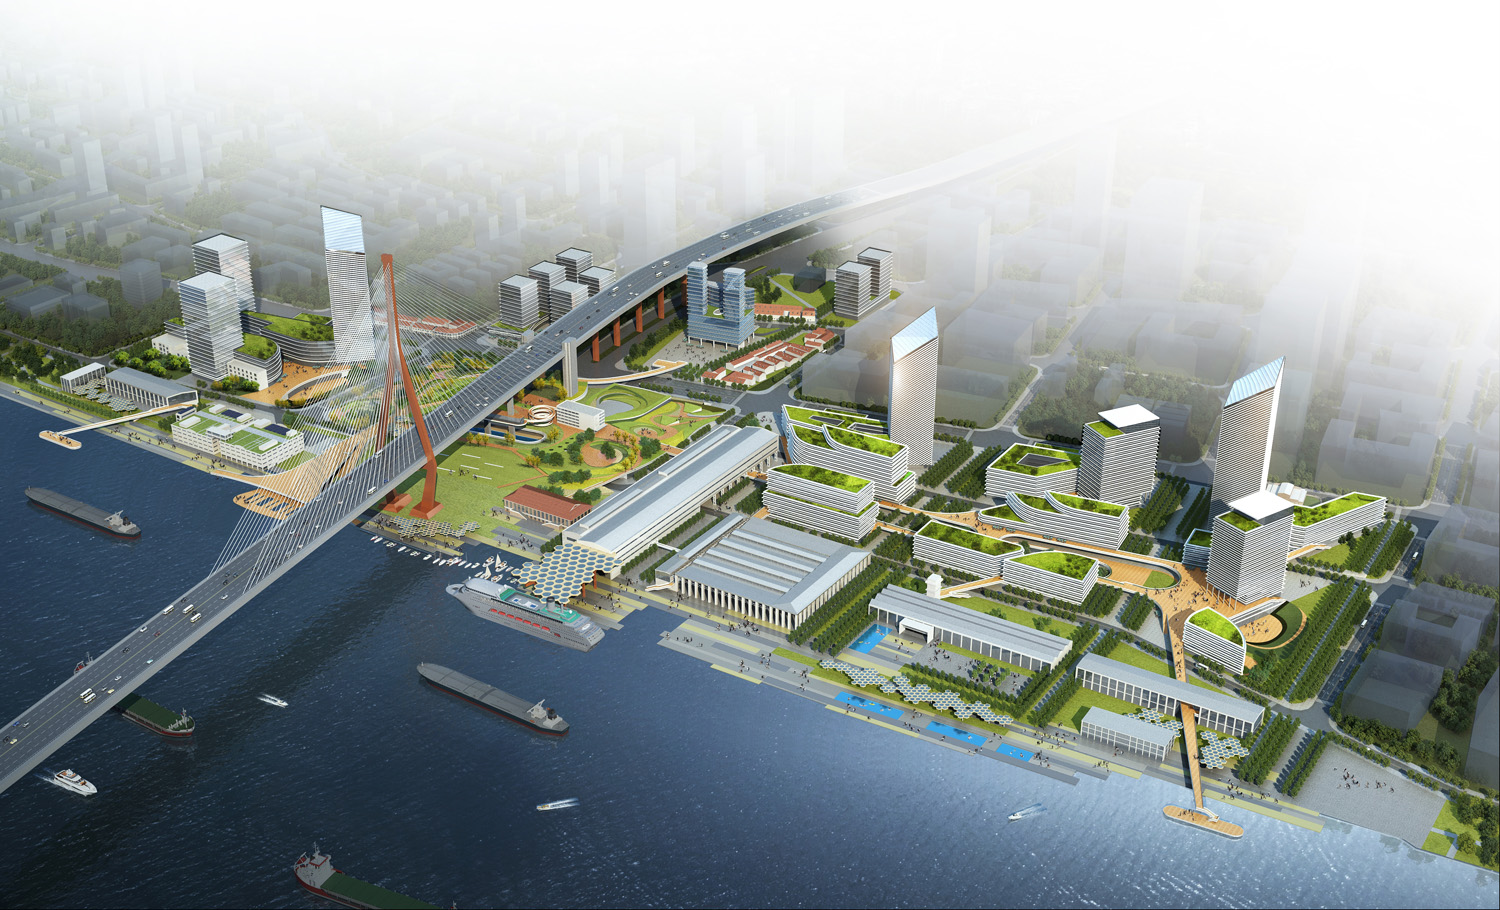 Aerial view of the Yangpu Bridge Riverside Area Abalos+Sentkiewicz AS+